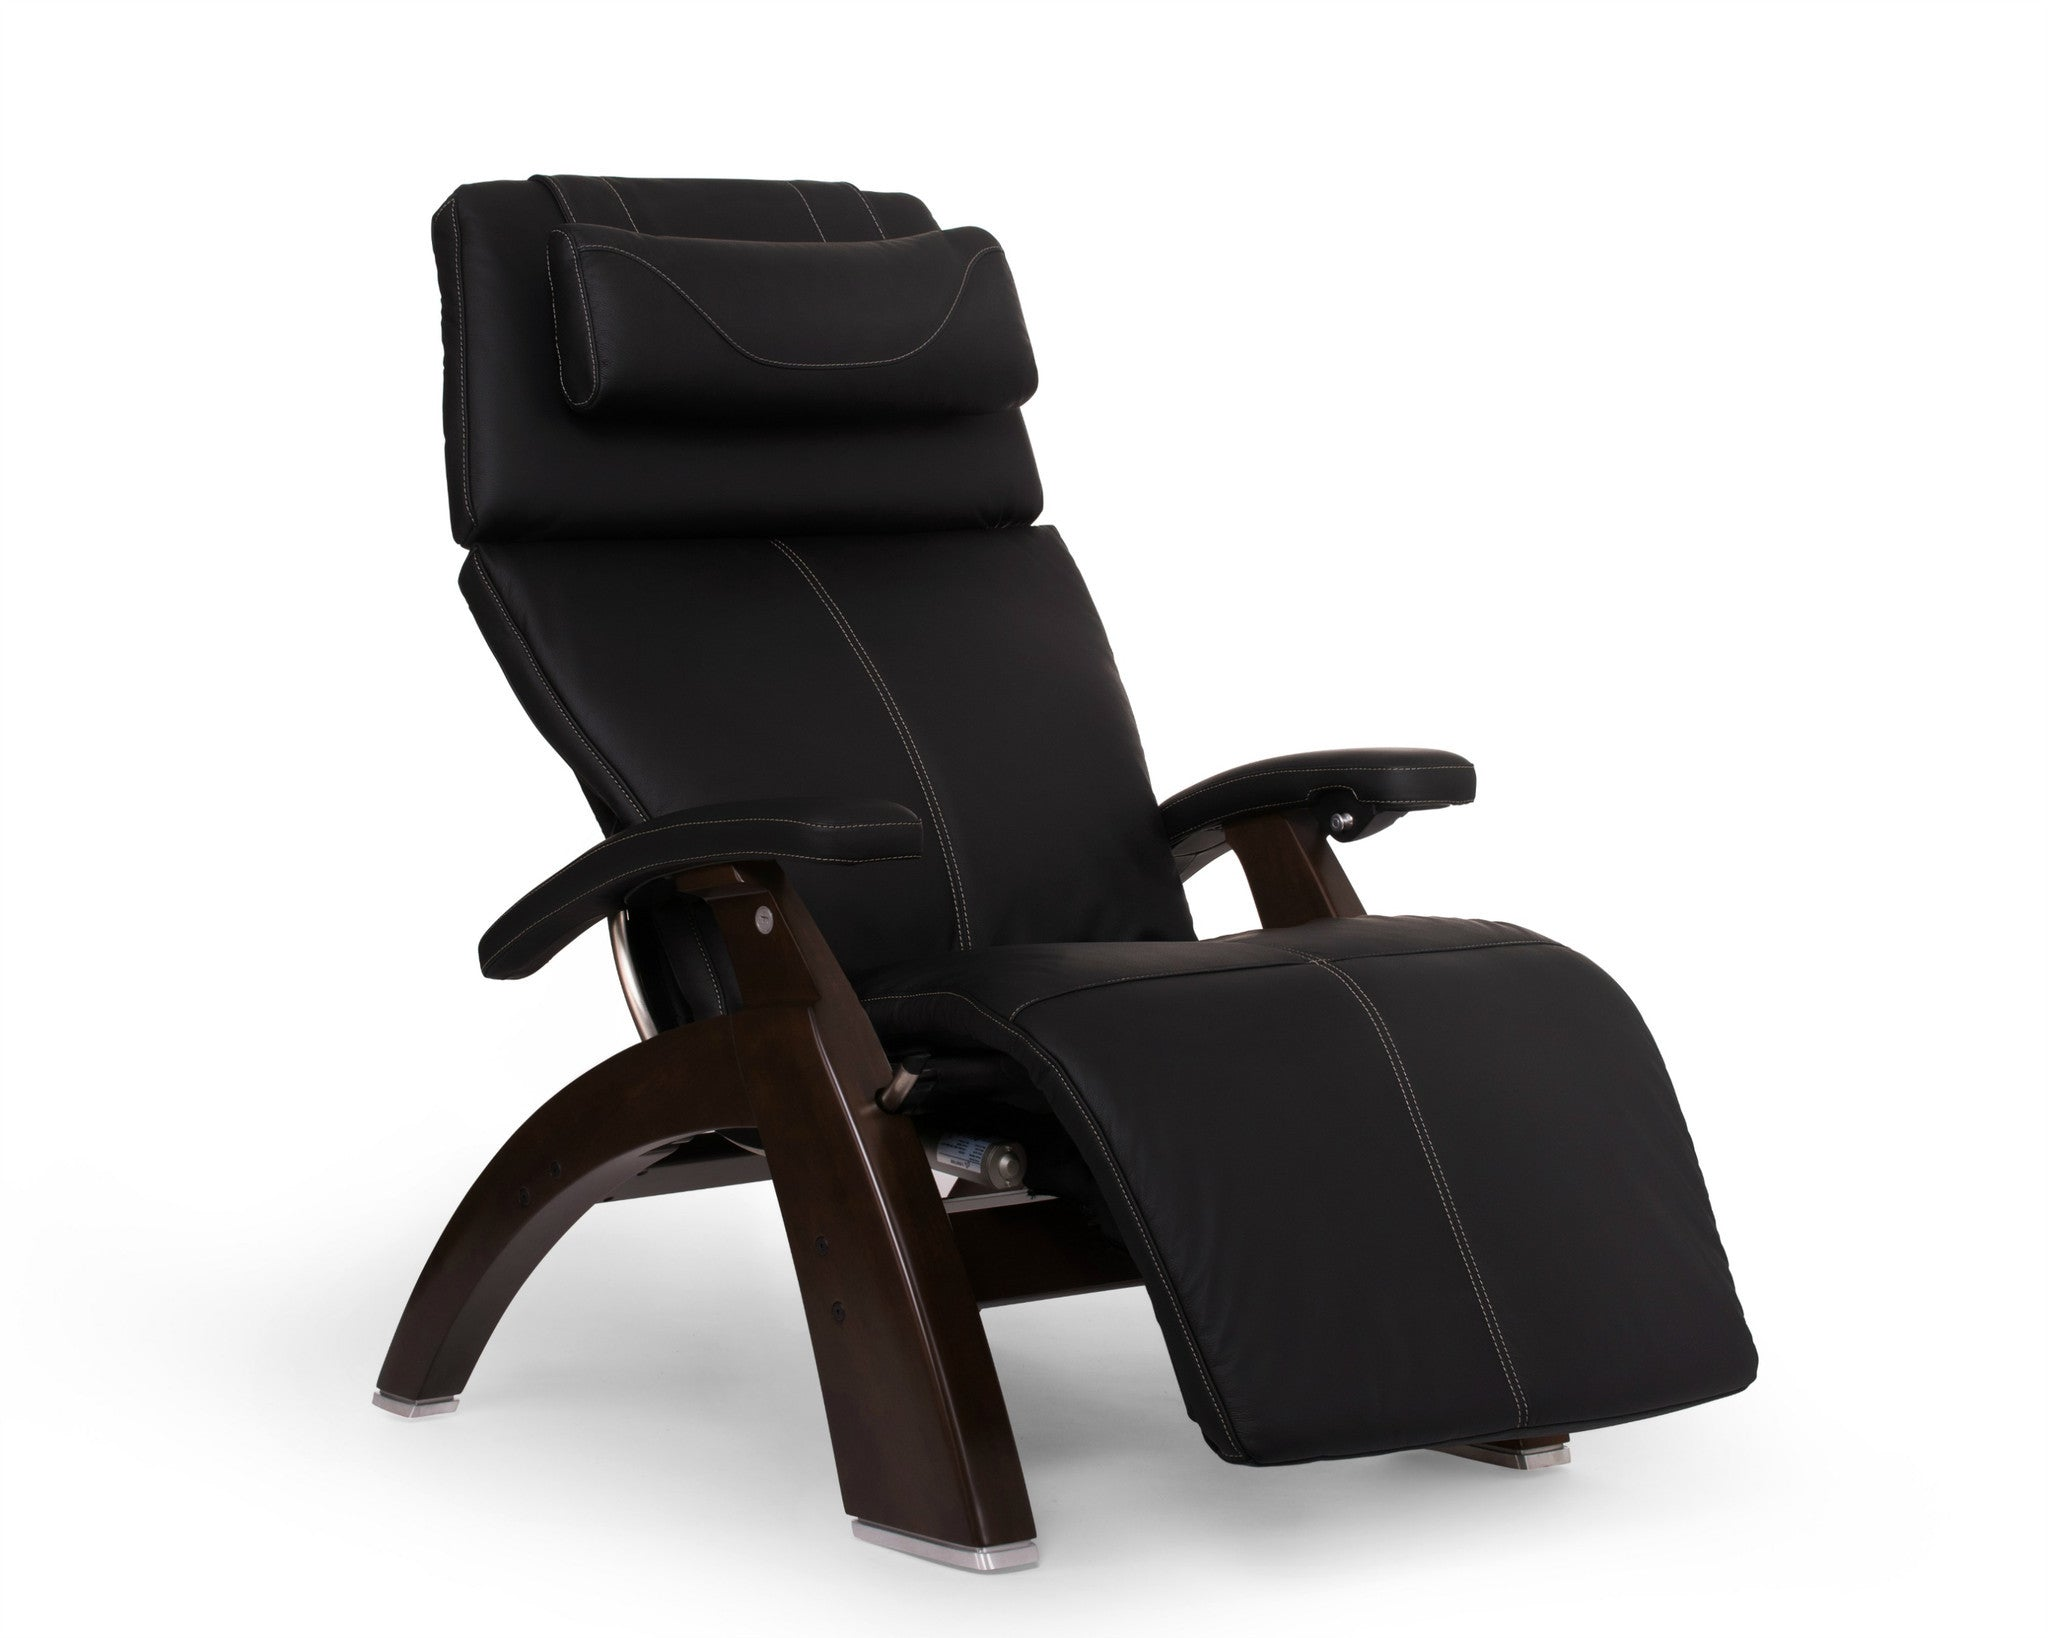 zero gravity chair amazon Why Buy Zero Gravity Chairs From Recliners L.A. Instead of Amazon  zero gravity chair amazon